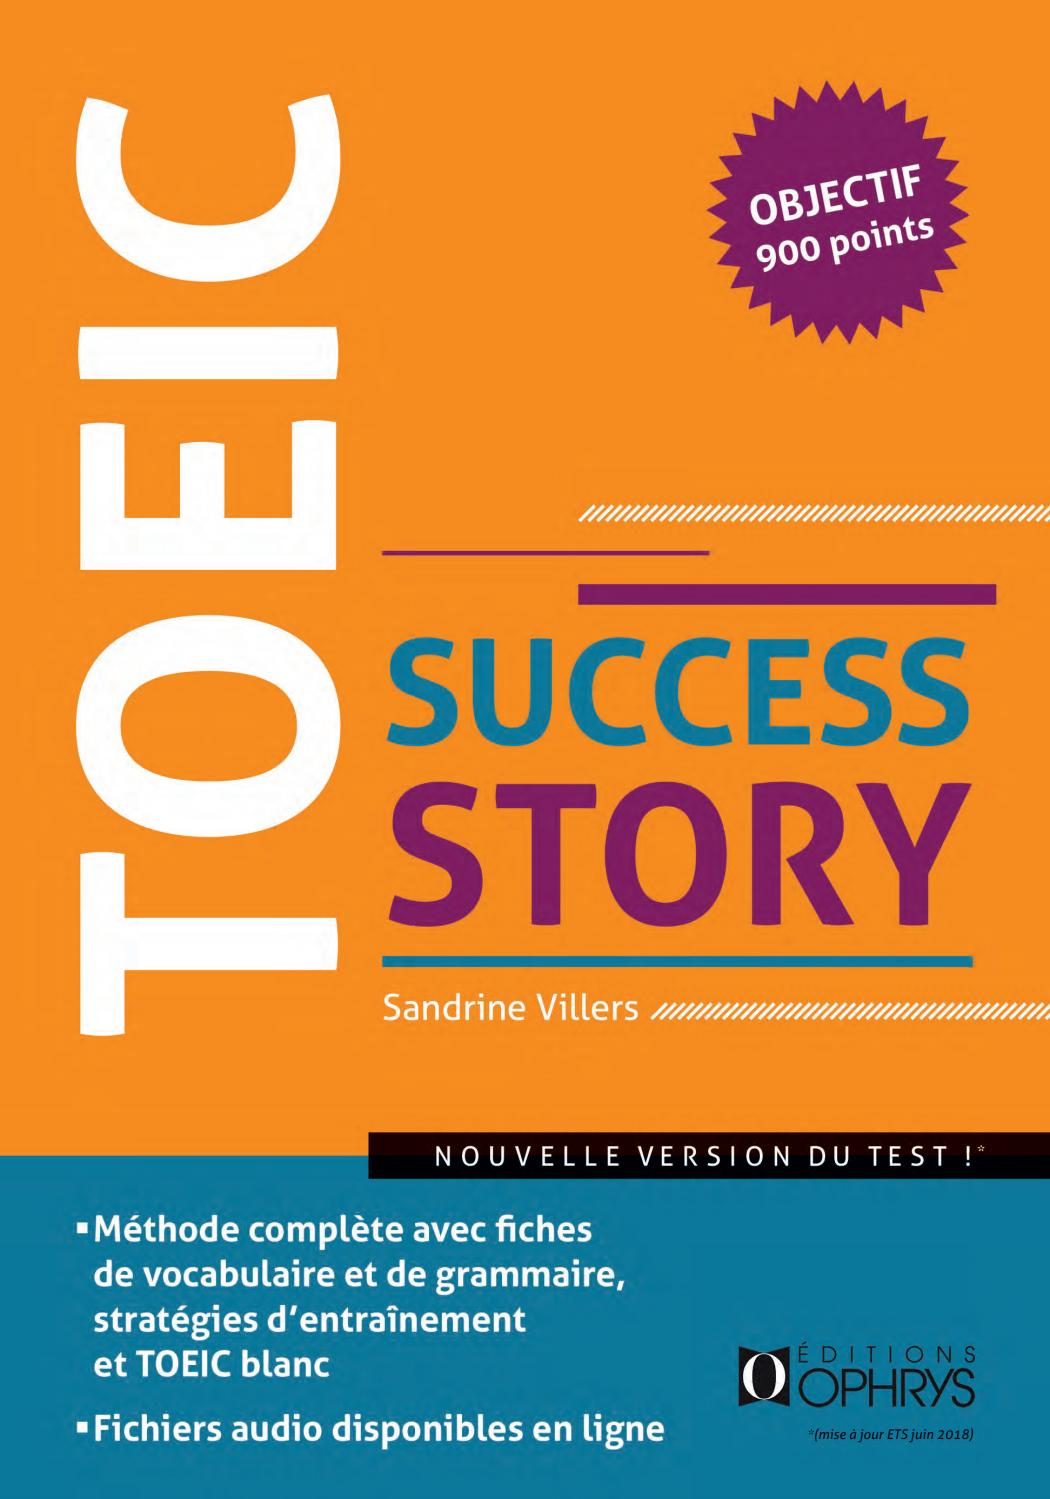 Grille Niveau Toeic Toeic Success Story Objectif 900 Points By To Groupe Issuu